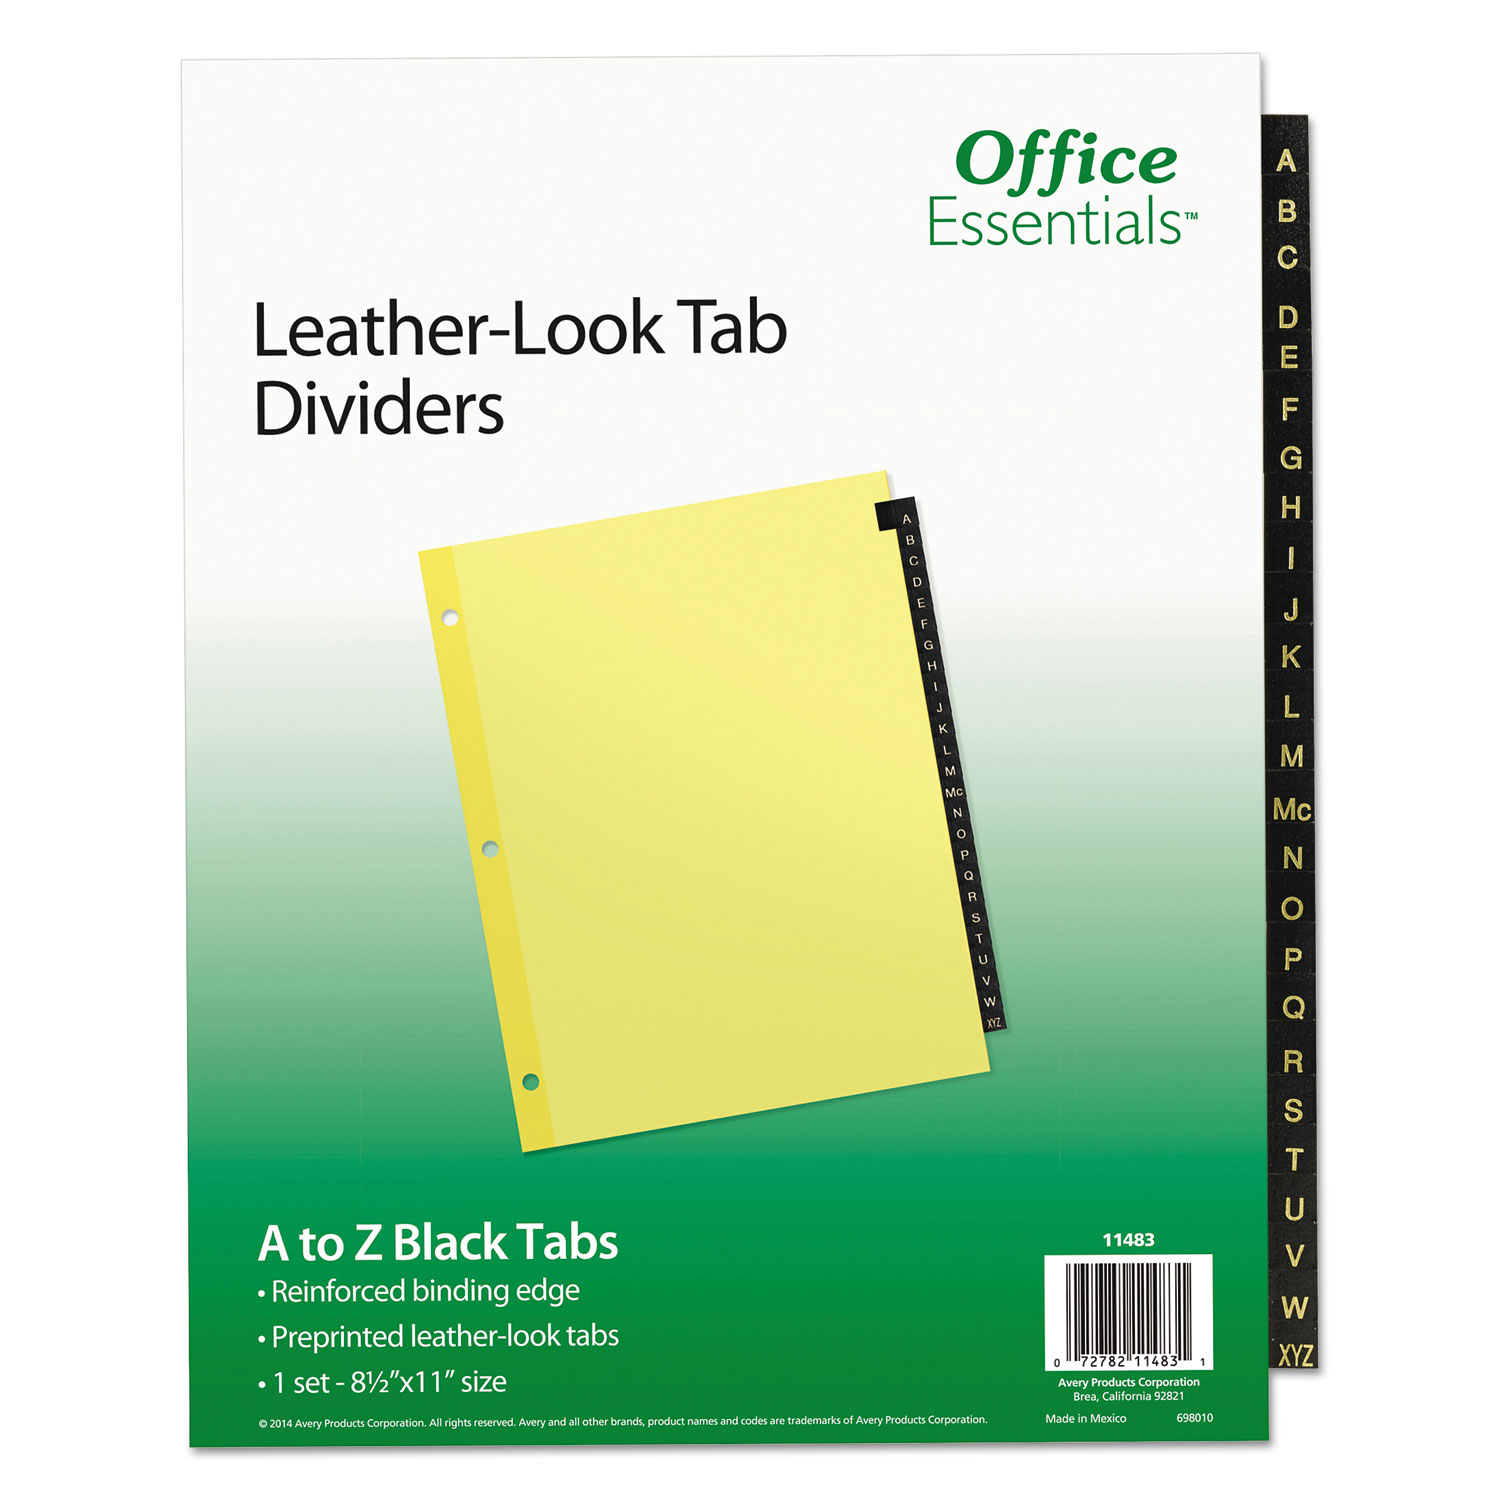 "Office Essentials Black Leather Preprinted Tab Dividers, 8-1/2"" x 11"", A-Z Tab, Black Tab, Buff Body, Not Printer Compatible, 1 Set/ST"